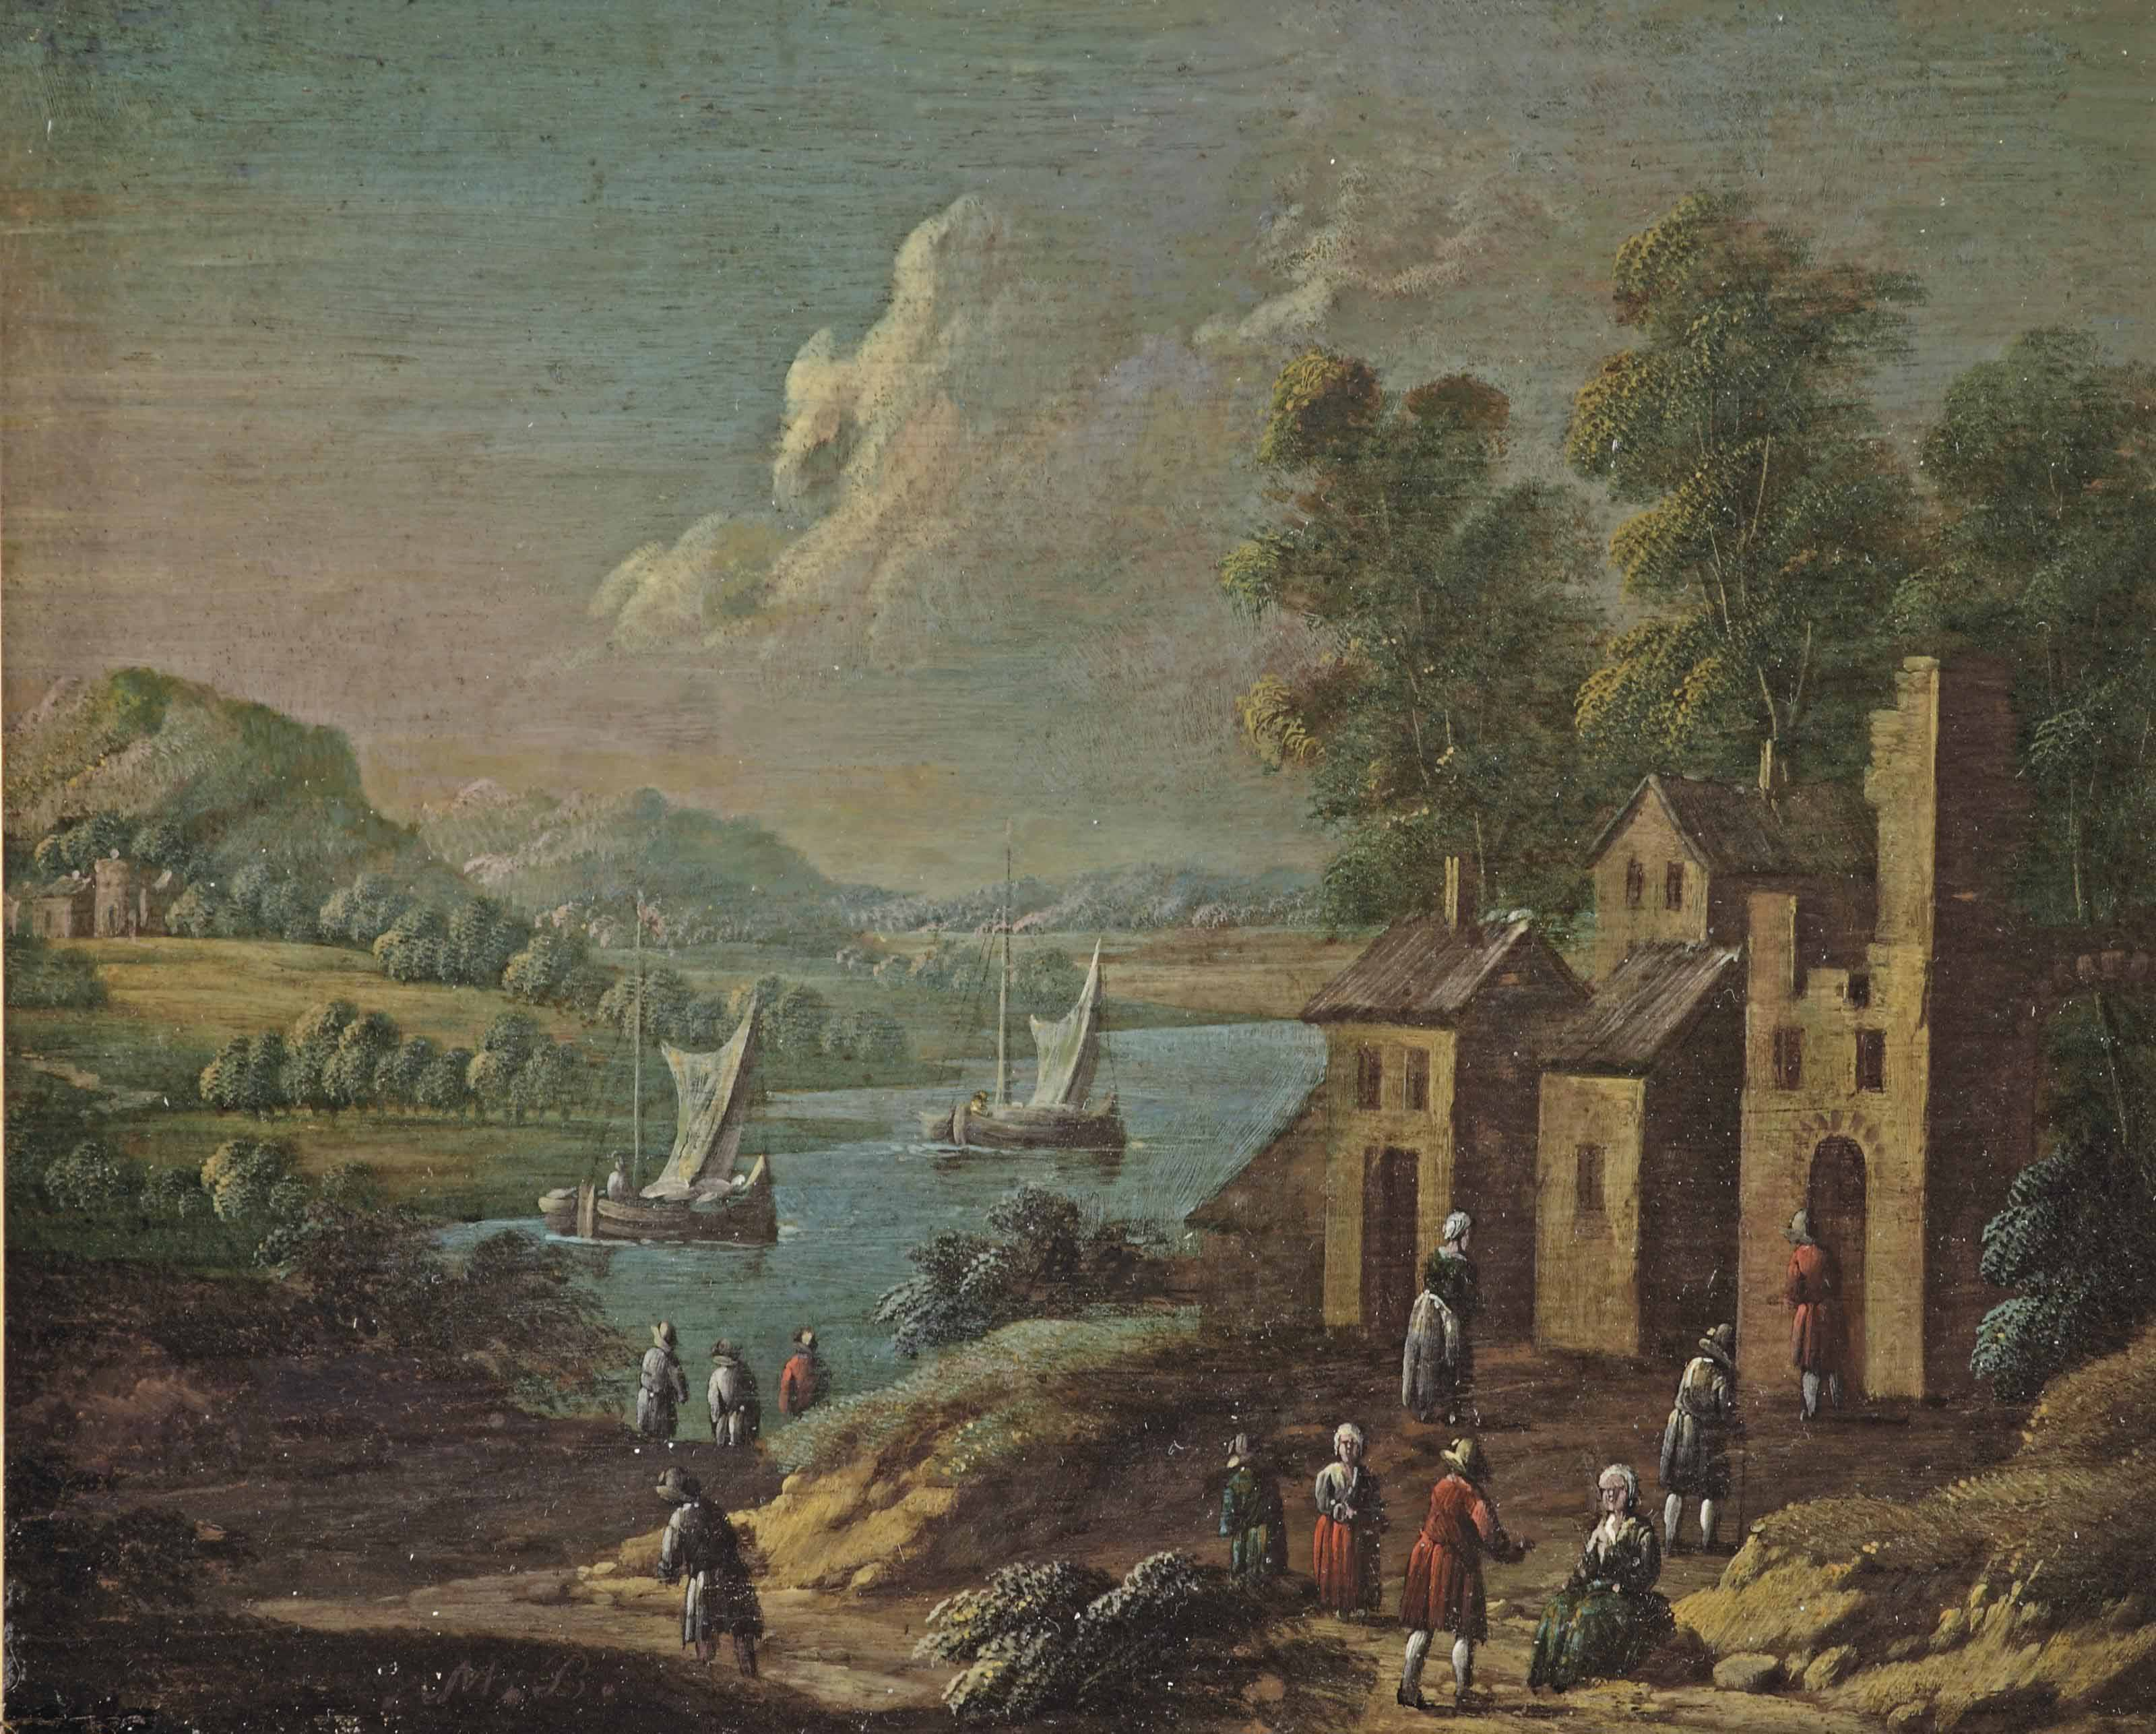 A river landscape with a village scene in the foreground